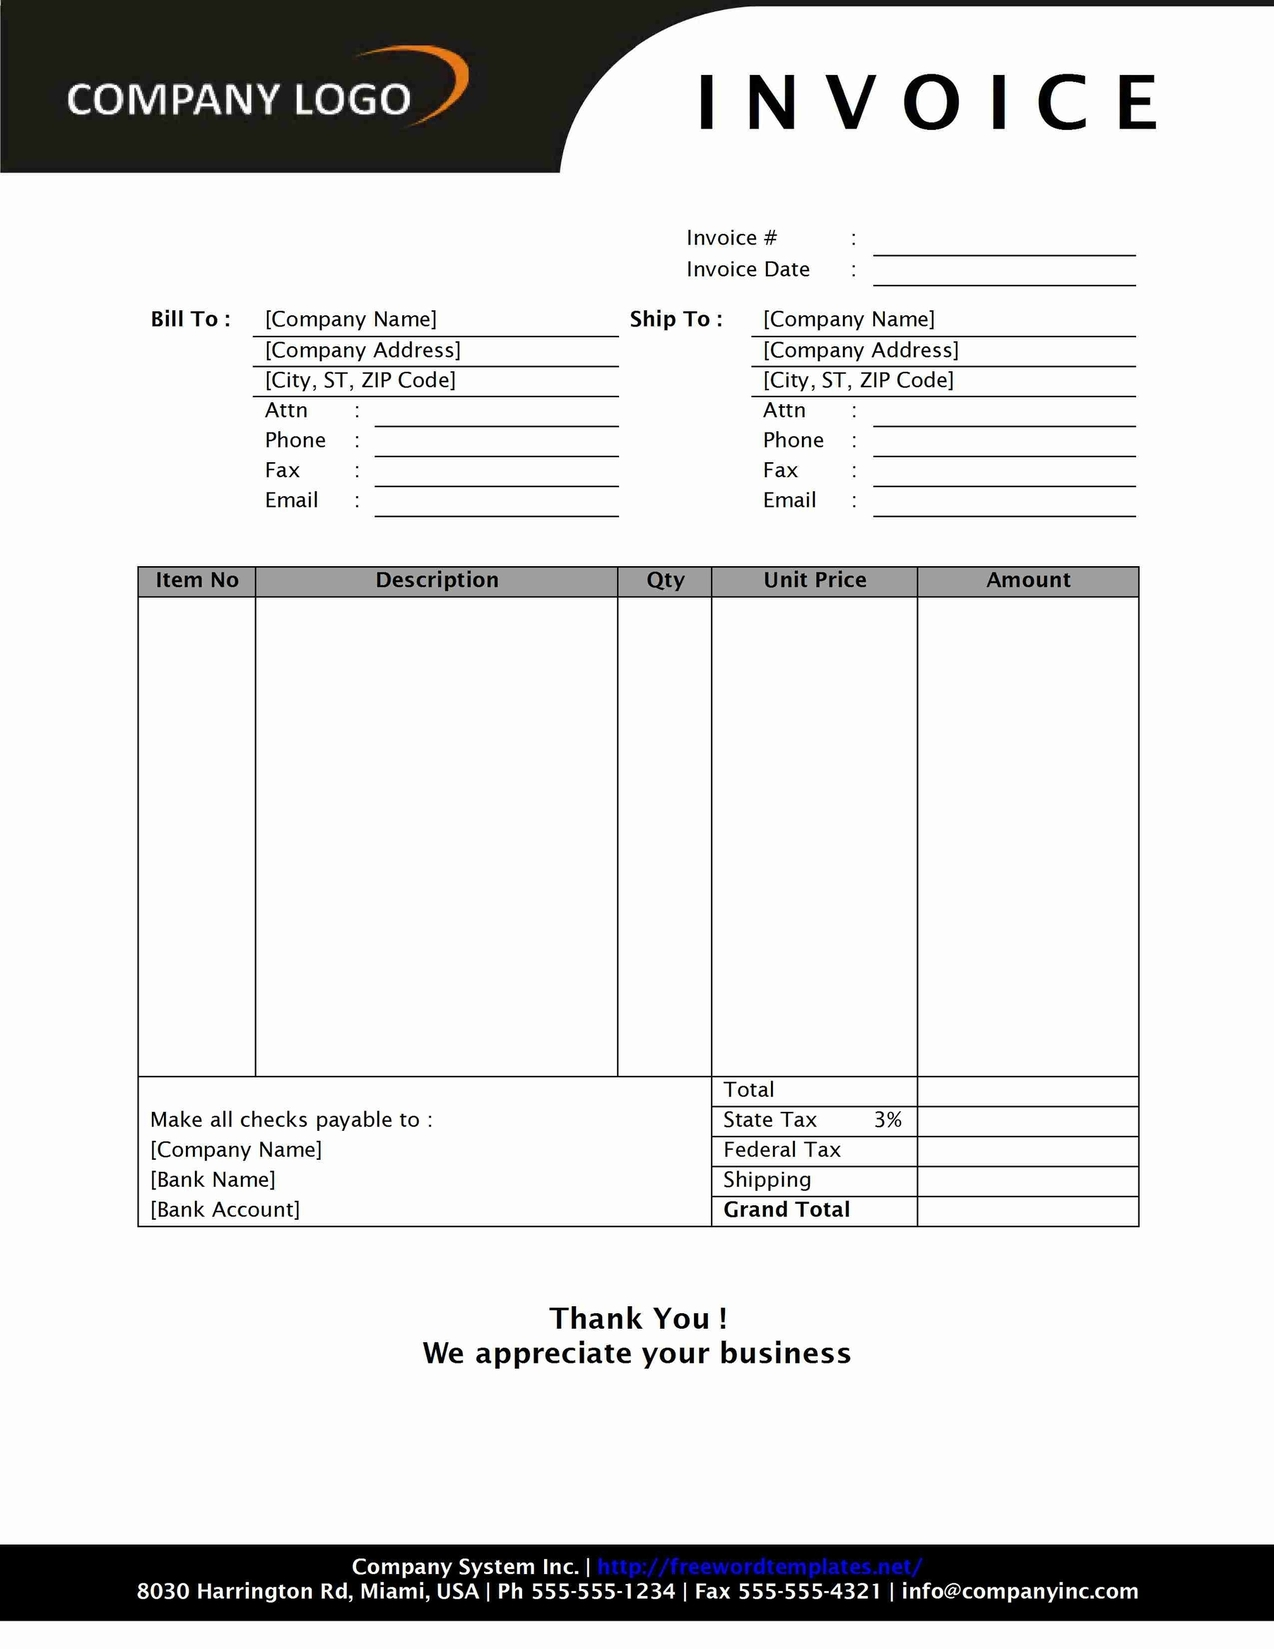 Sales Invoice Format from discuss.erpnext.com